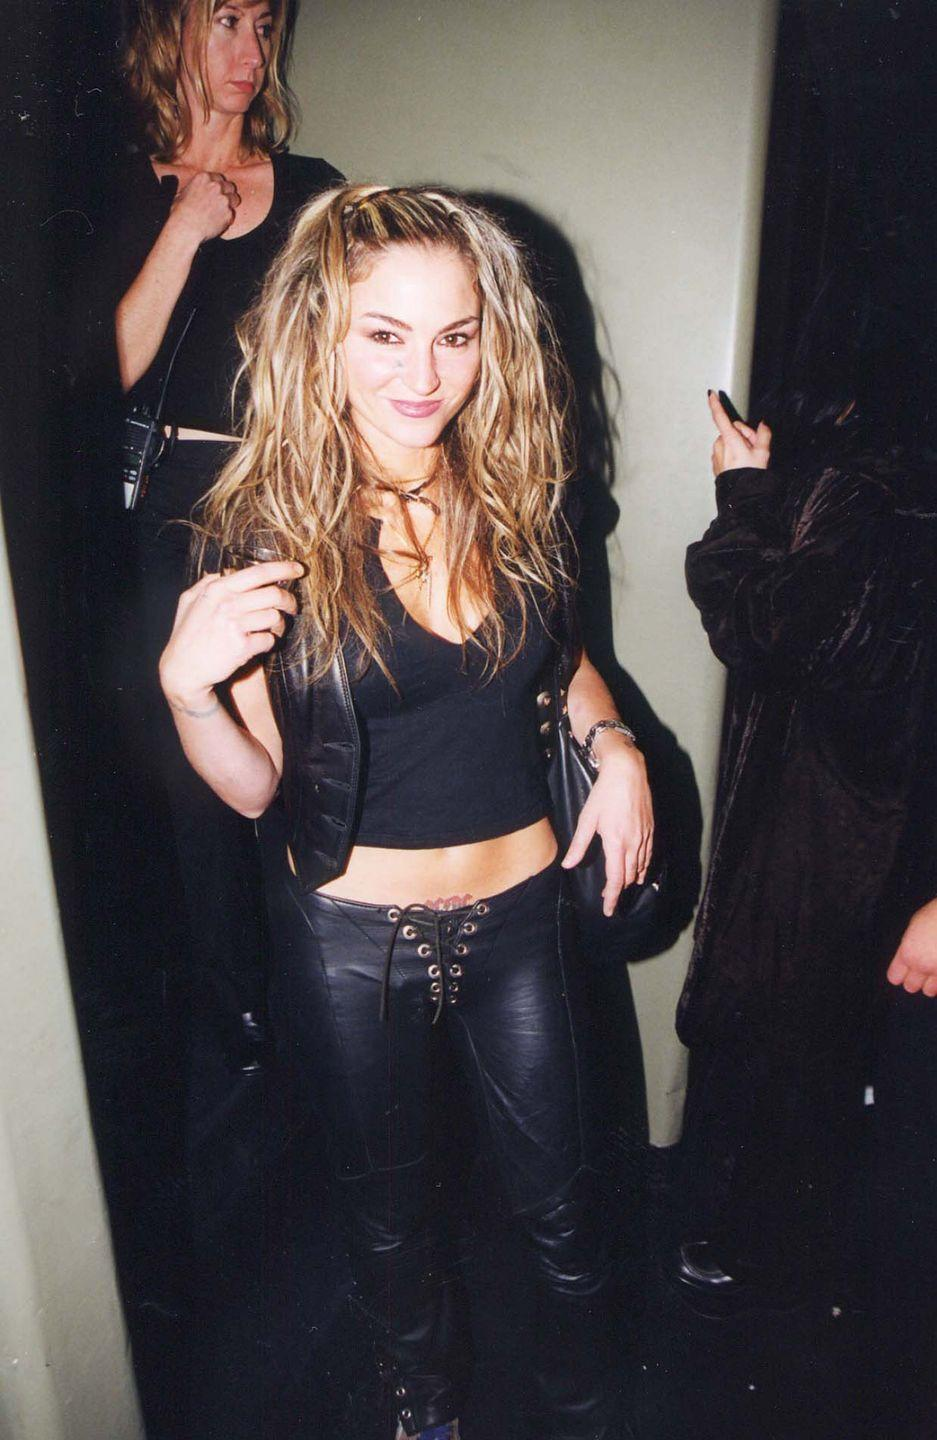 <p>Drea de Matteo attends a performance by The Cult at The Viper Room in Los Angeles on February 26, 2000.</p>